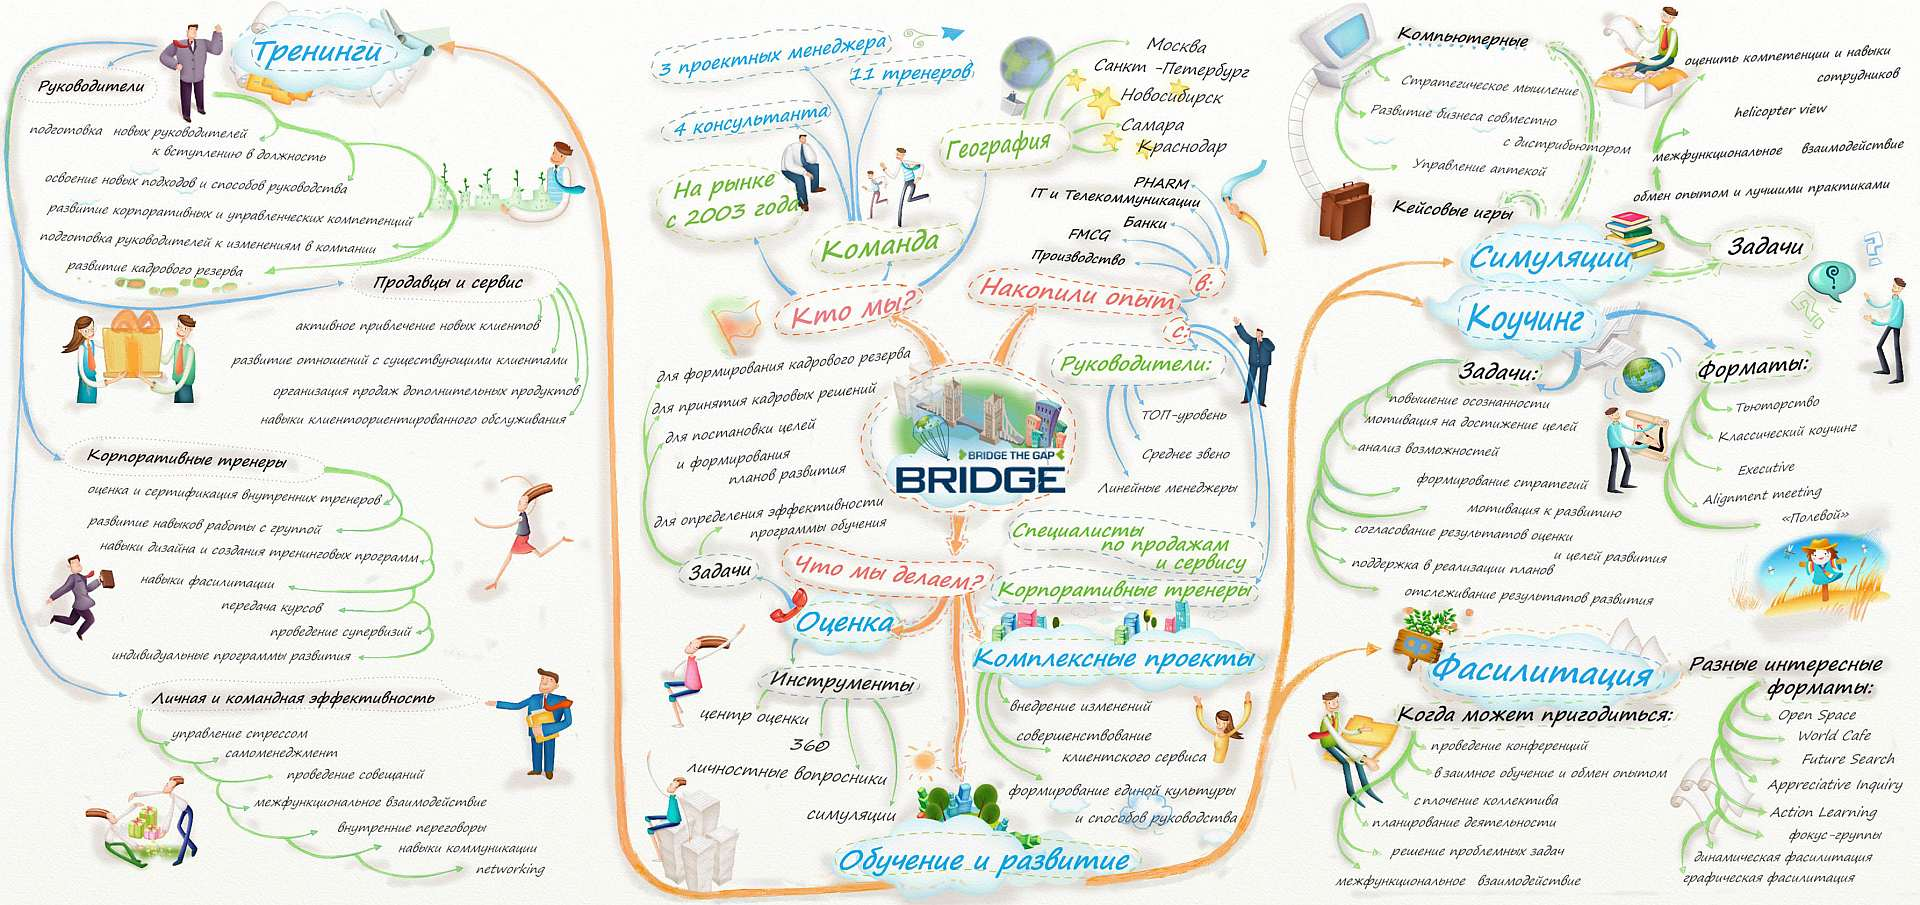 BridgeMindMap